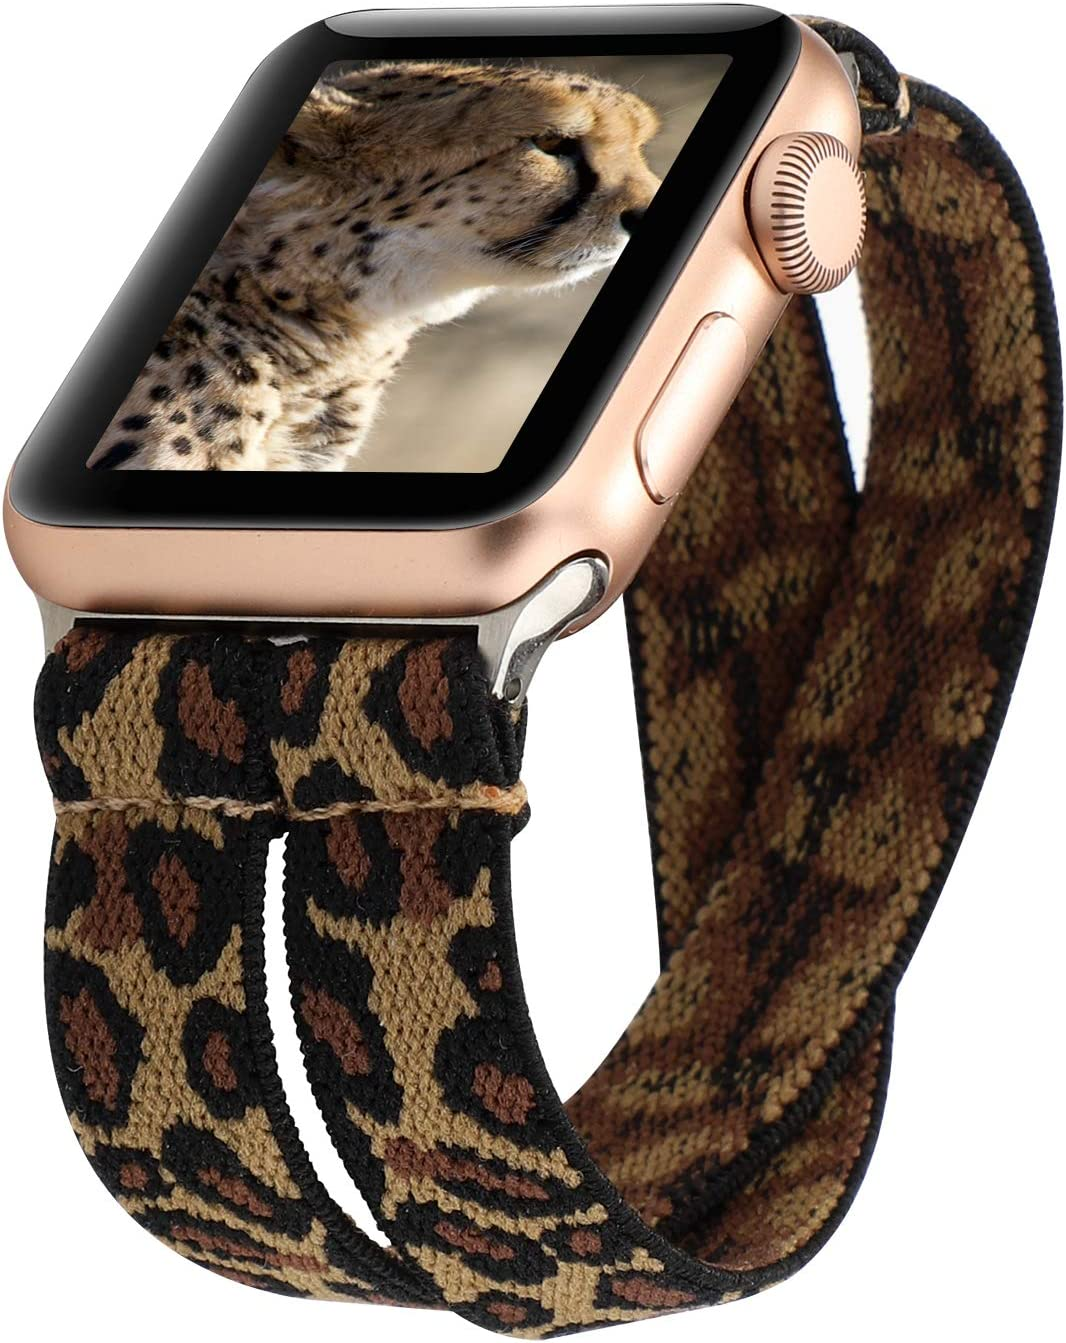 YOSWAN Stretchy Loop Strap Compatible for Apple Watch Band 40mm 38mm 44mm 42mm iWatch Series 6/5/4/3/2/1 Stretch Elastics Wristbelt (Double Tour Cheetah, 38mm/40mm)